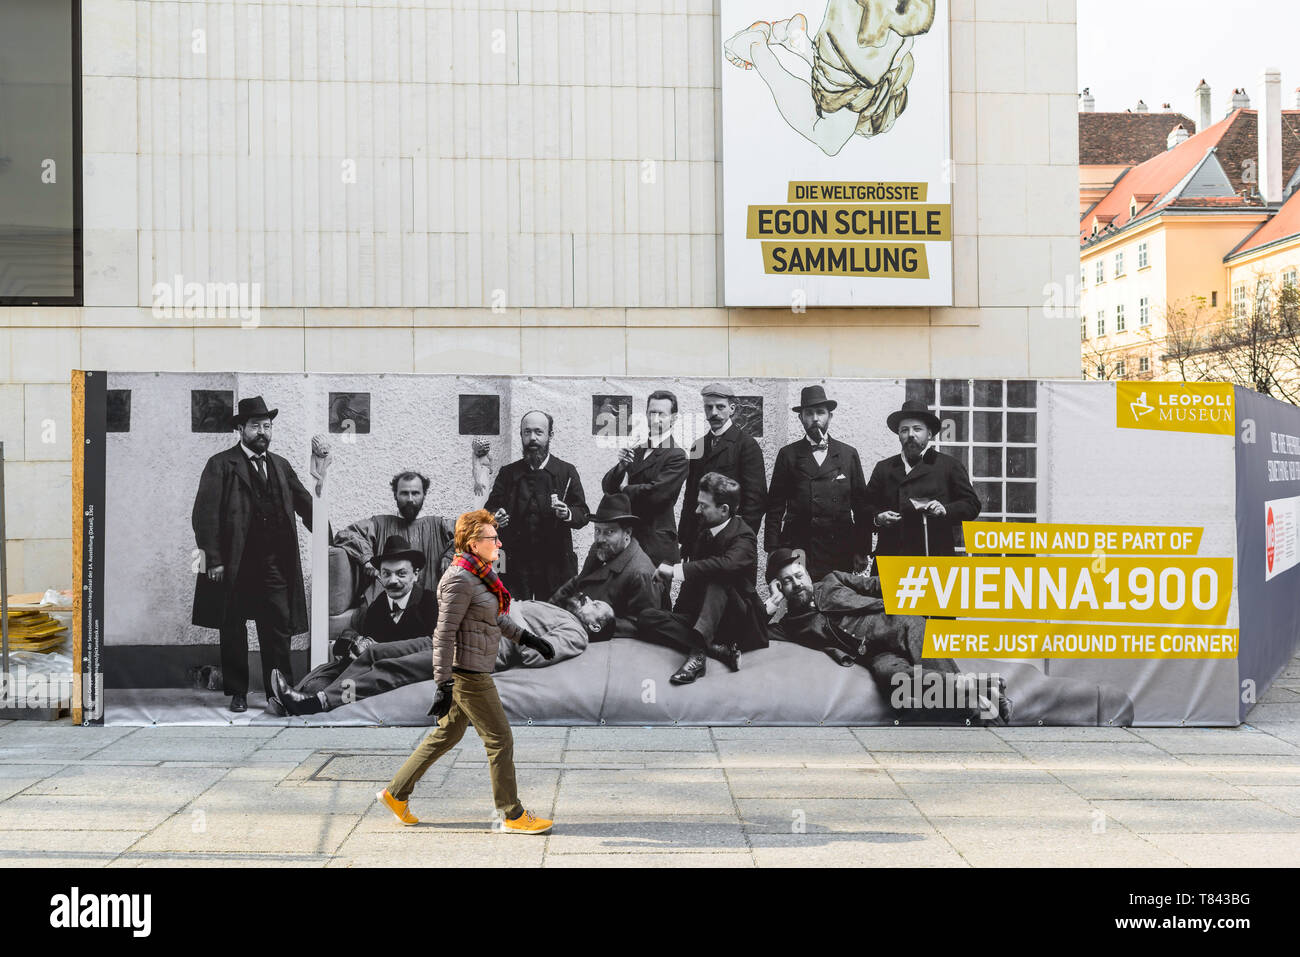 Vienna Secession, view of a middle aged woman walking past a Leopold Museum advertisement celebrating artists of the Secession movement in Vienna. Stock Photo